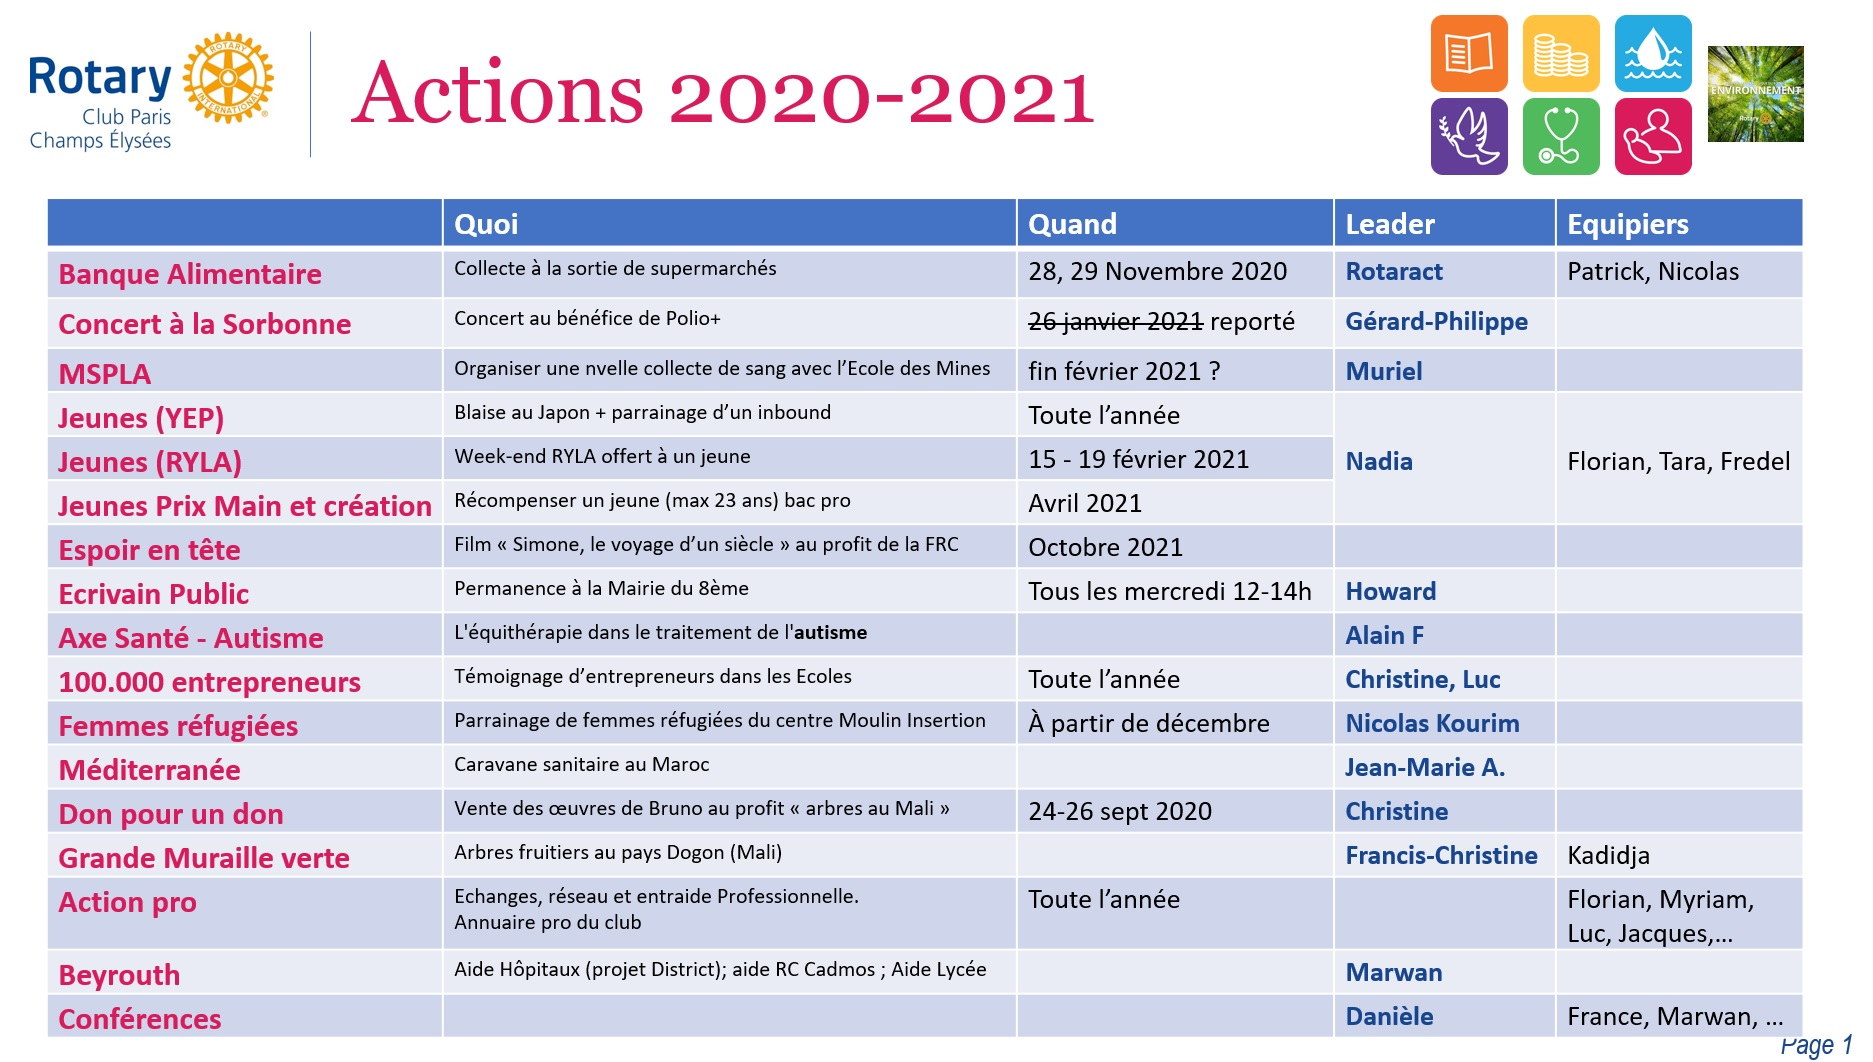 actions RCPCE 2020-2021